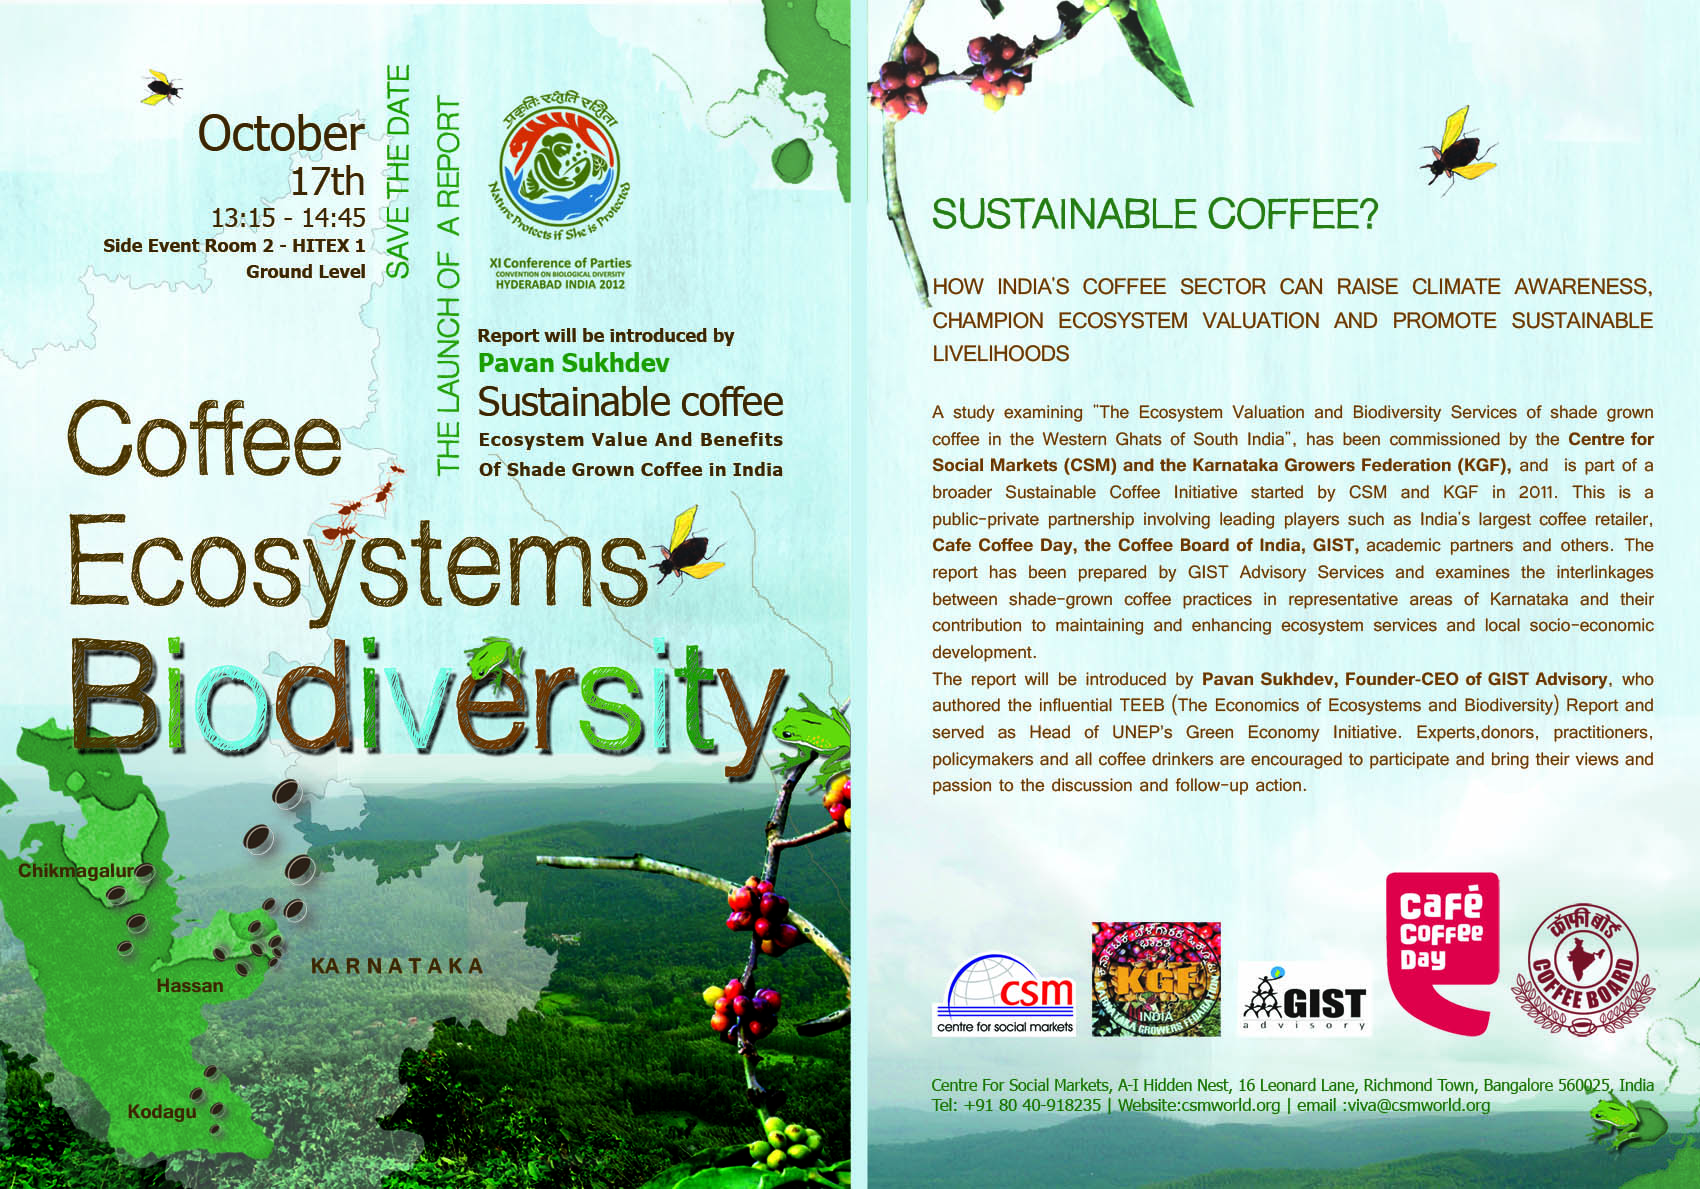 Sustainable Coffee – Ecosystem value and benefits of shade grown coffee in India